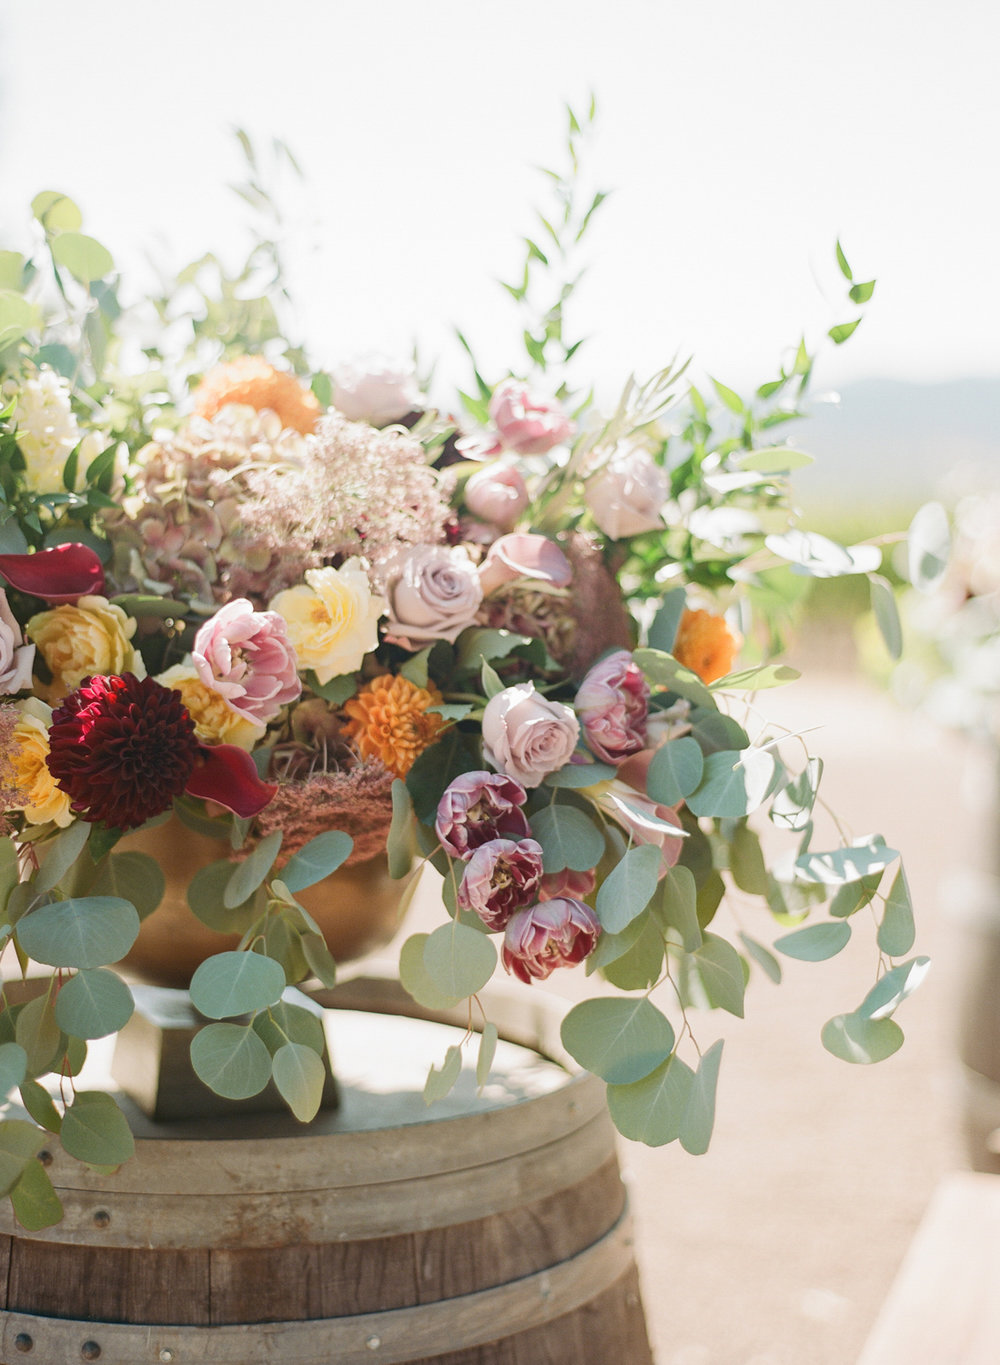 Eucalyptus studded floral arrangements on decorative barrels at the ceremony space; Sylvie Gil Photography